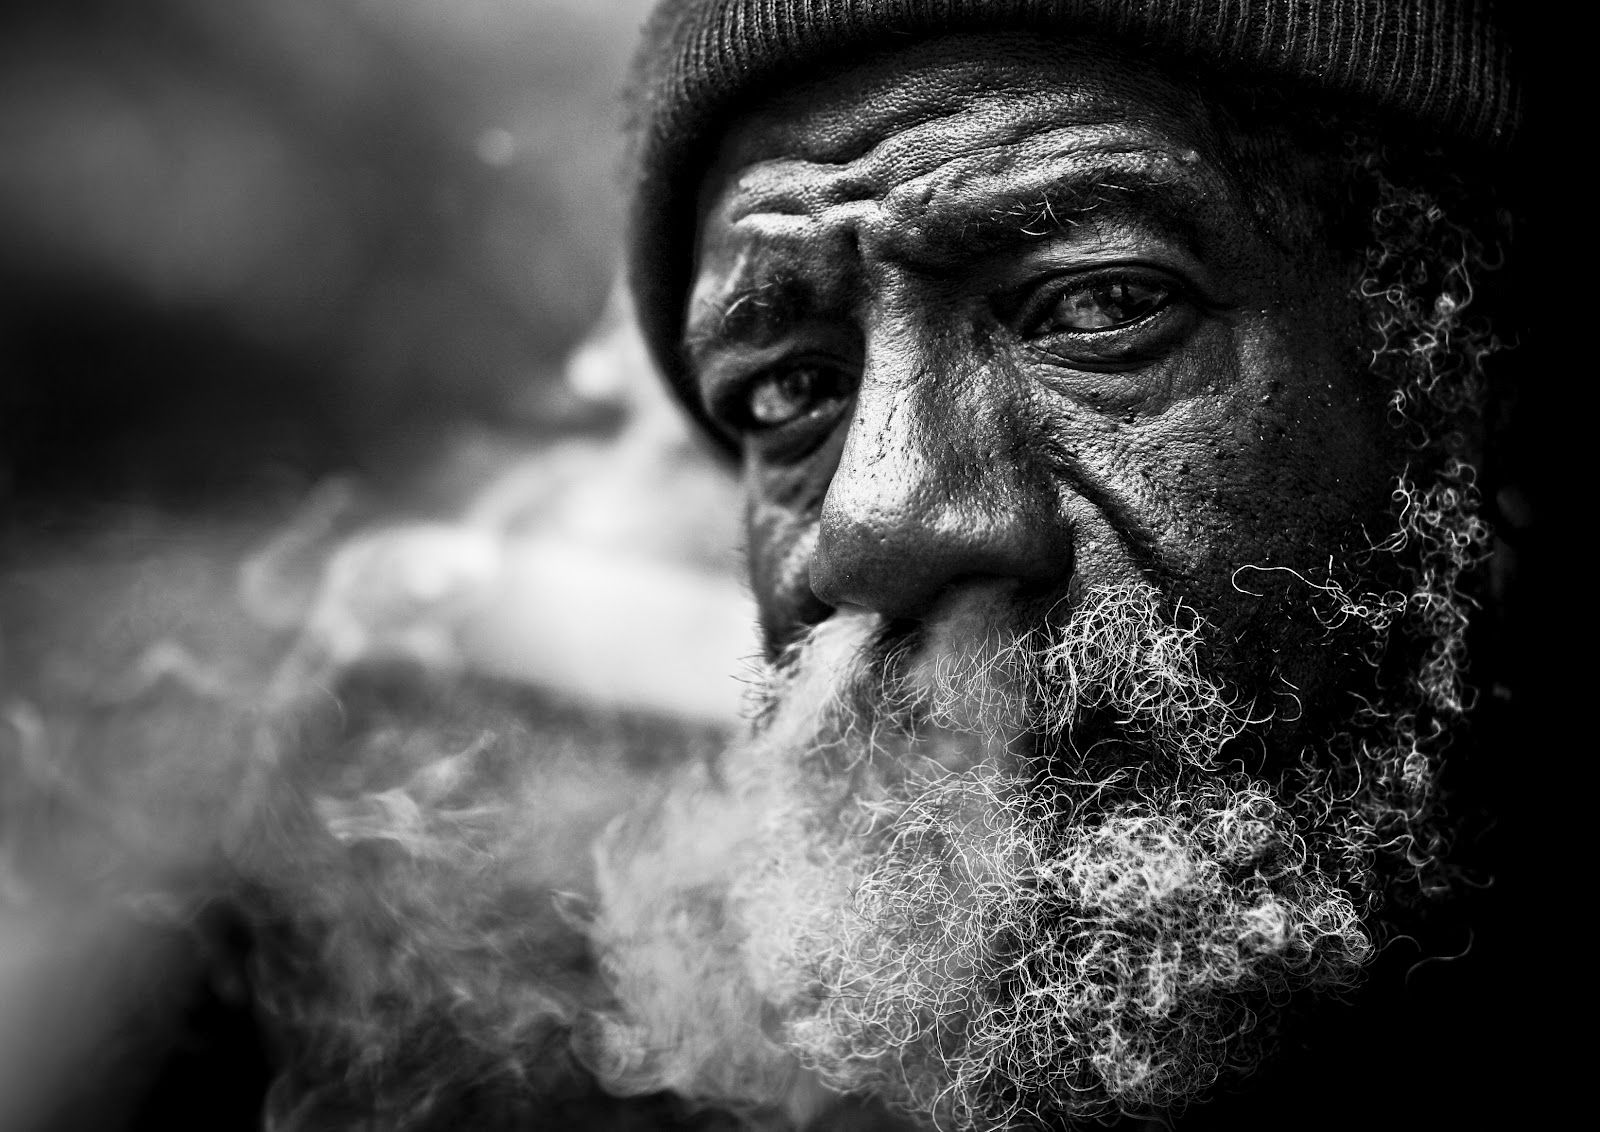 Haunting black and white portraits of homeless people by lee